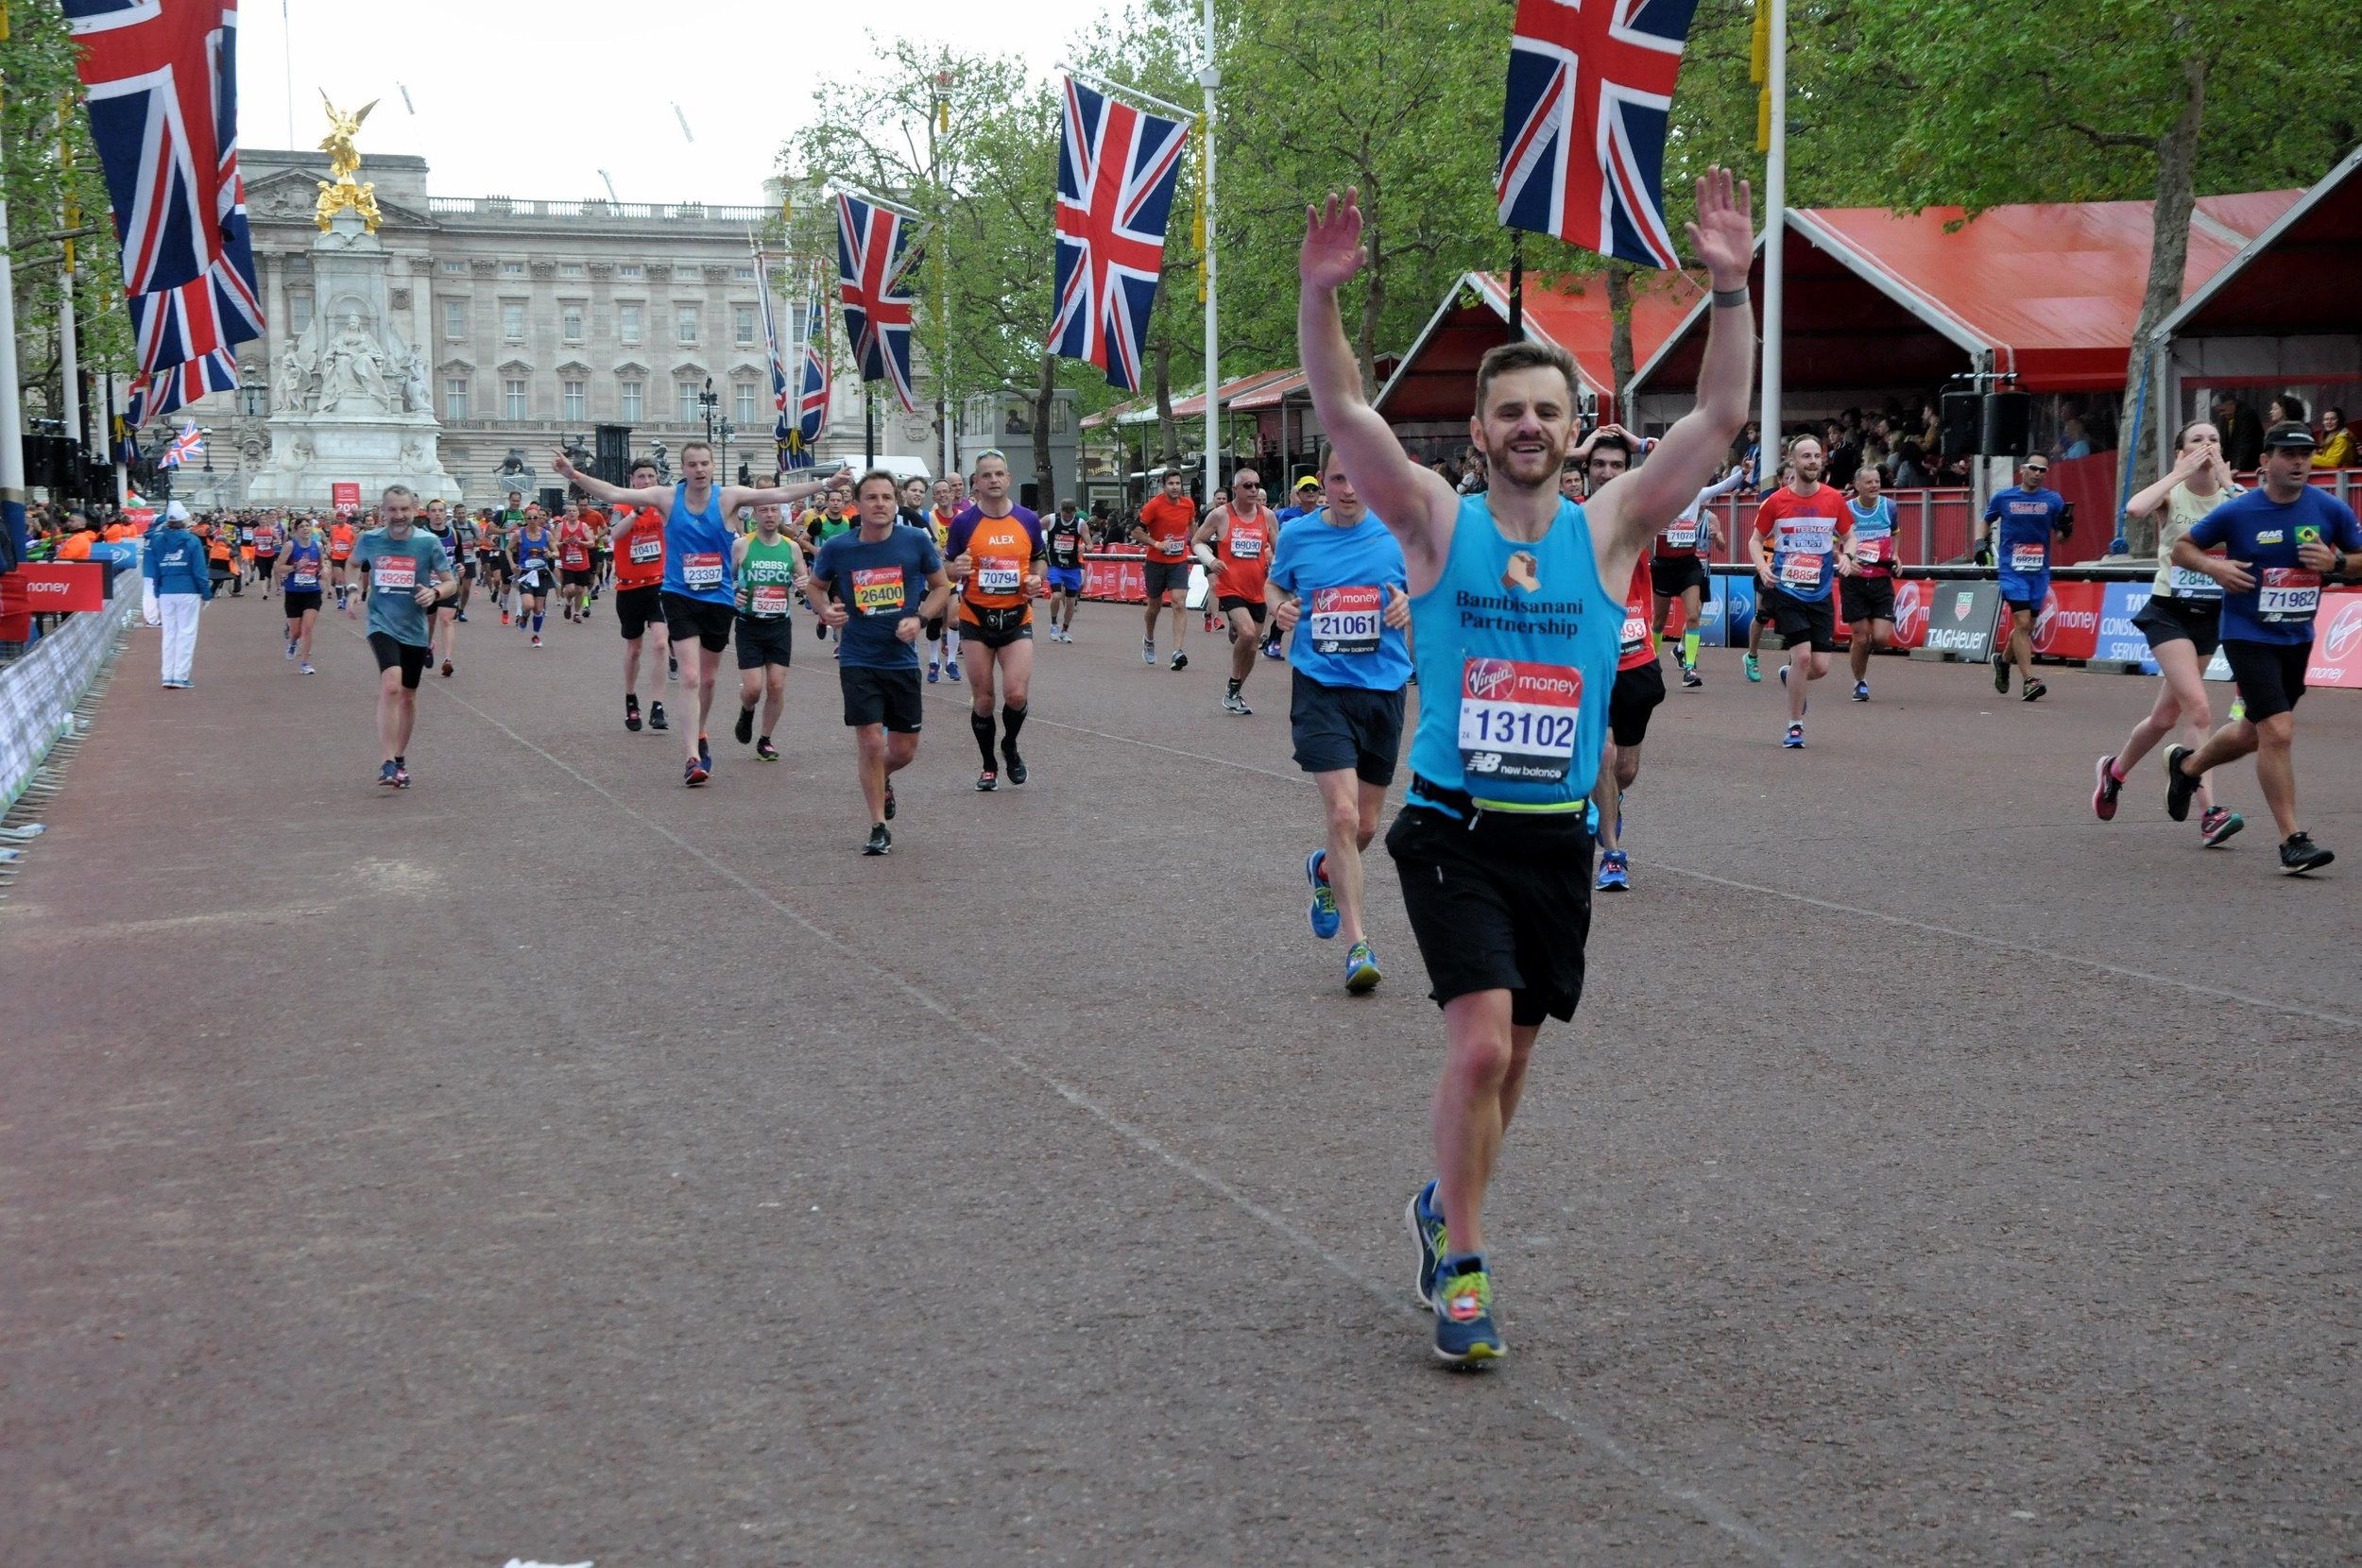 Chris at The Mall next to Buckingham Palace during the 2019 London Marathon